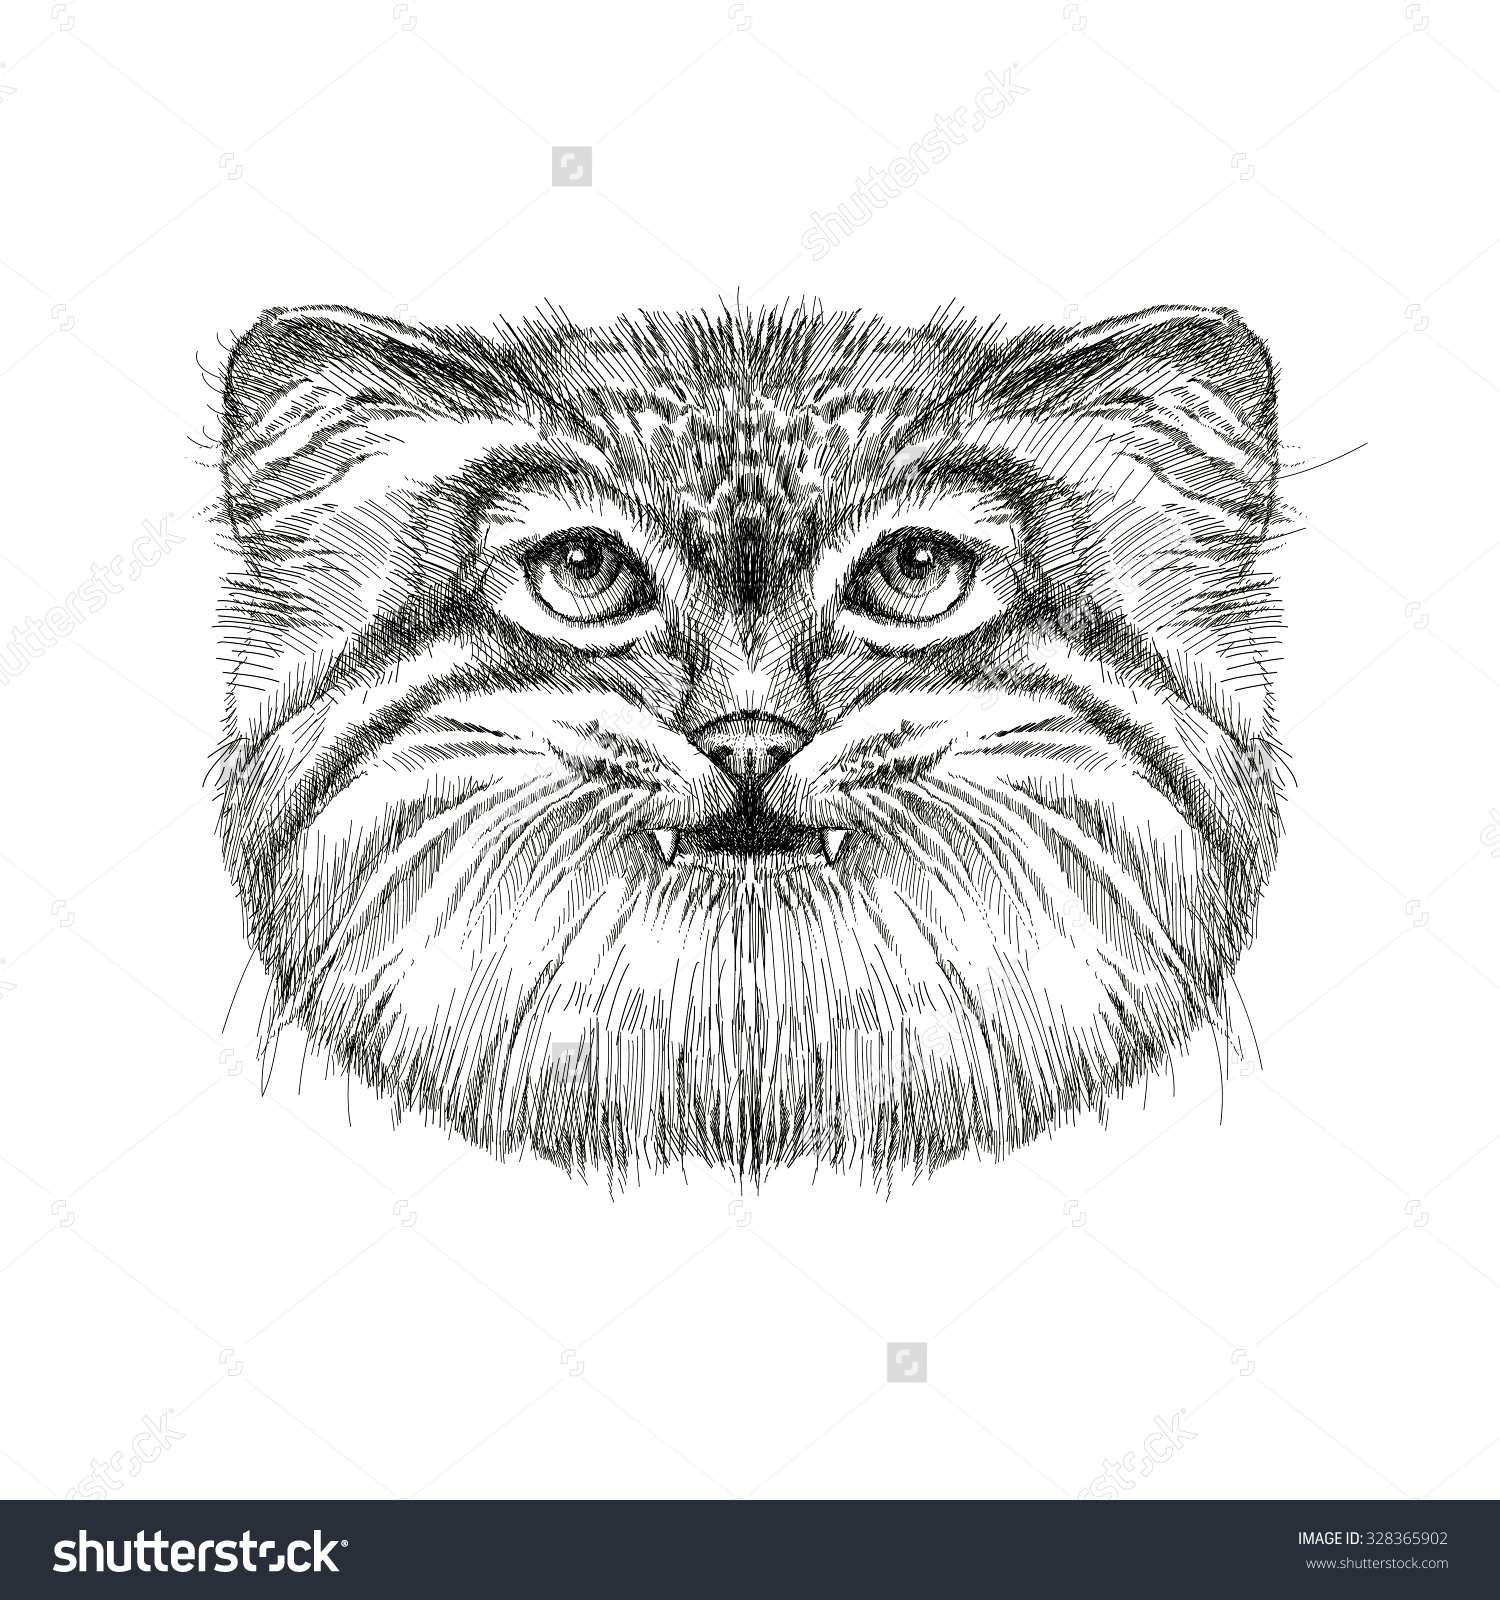 Palla's Cat clipart #16, Download drawings